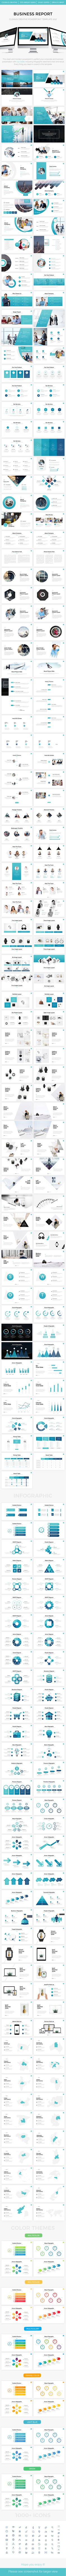 Bundle 2 in 1 Clean & Effective Business Powerpoint Template by williamhenry989